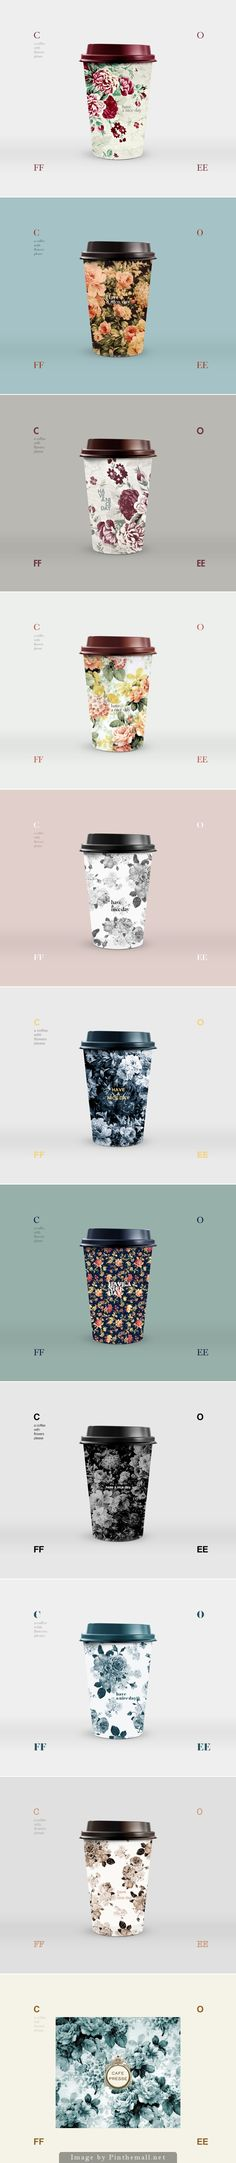 Coffee with flowers. Graphic Design, Packaging, Pattern Design